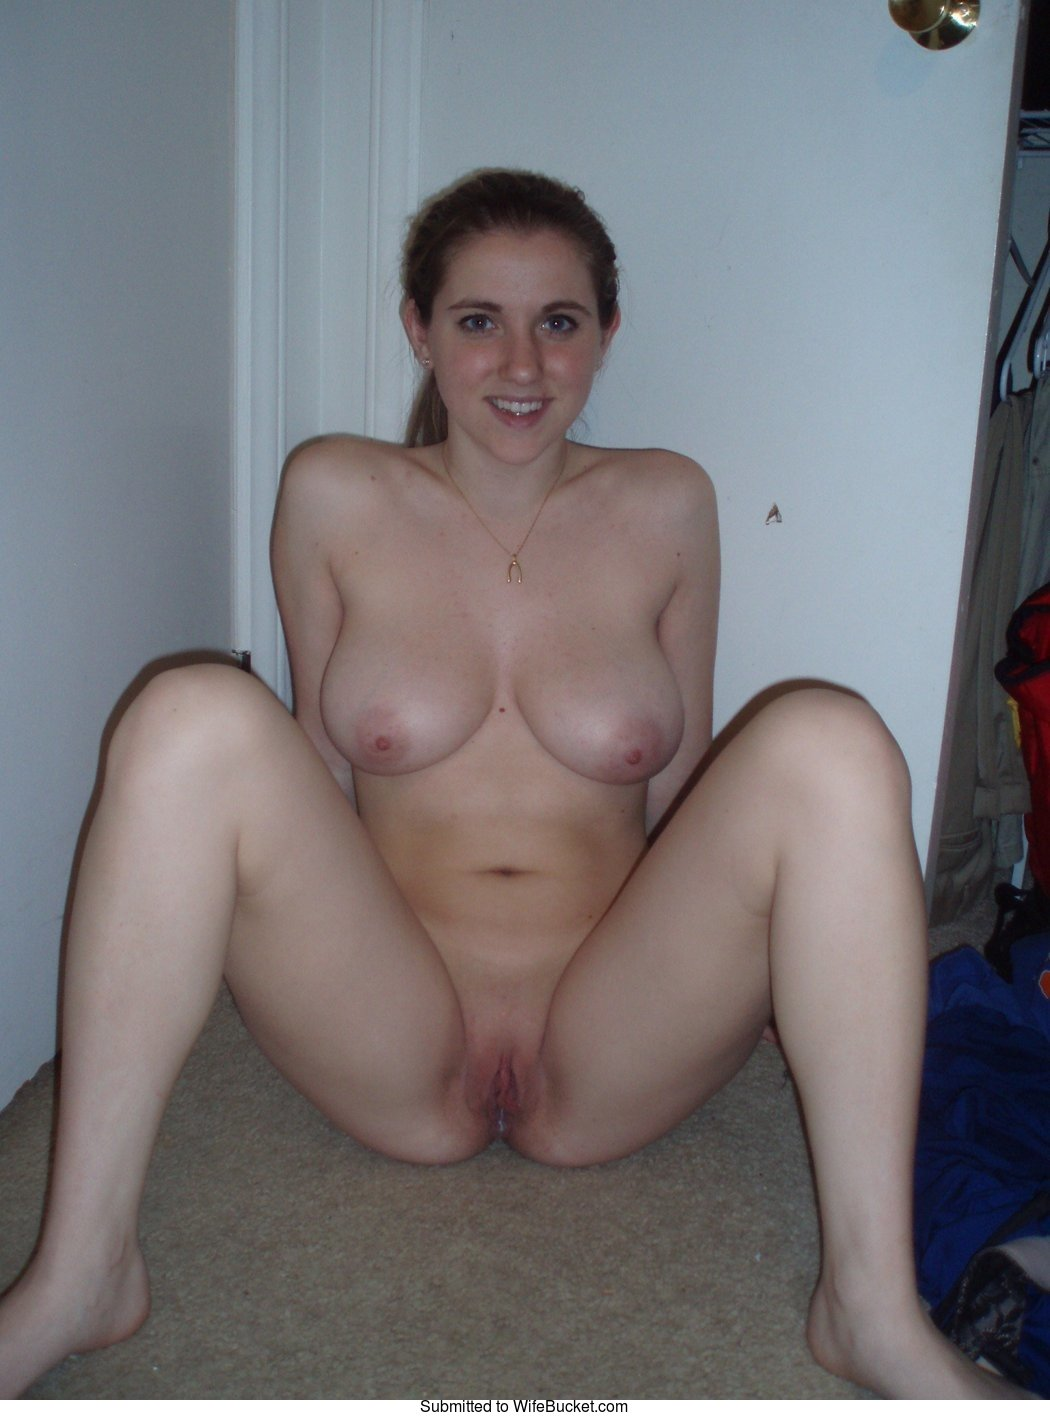 Post your nude wives and girlfriends